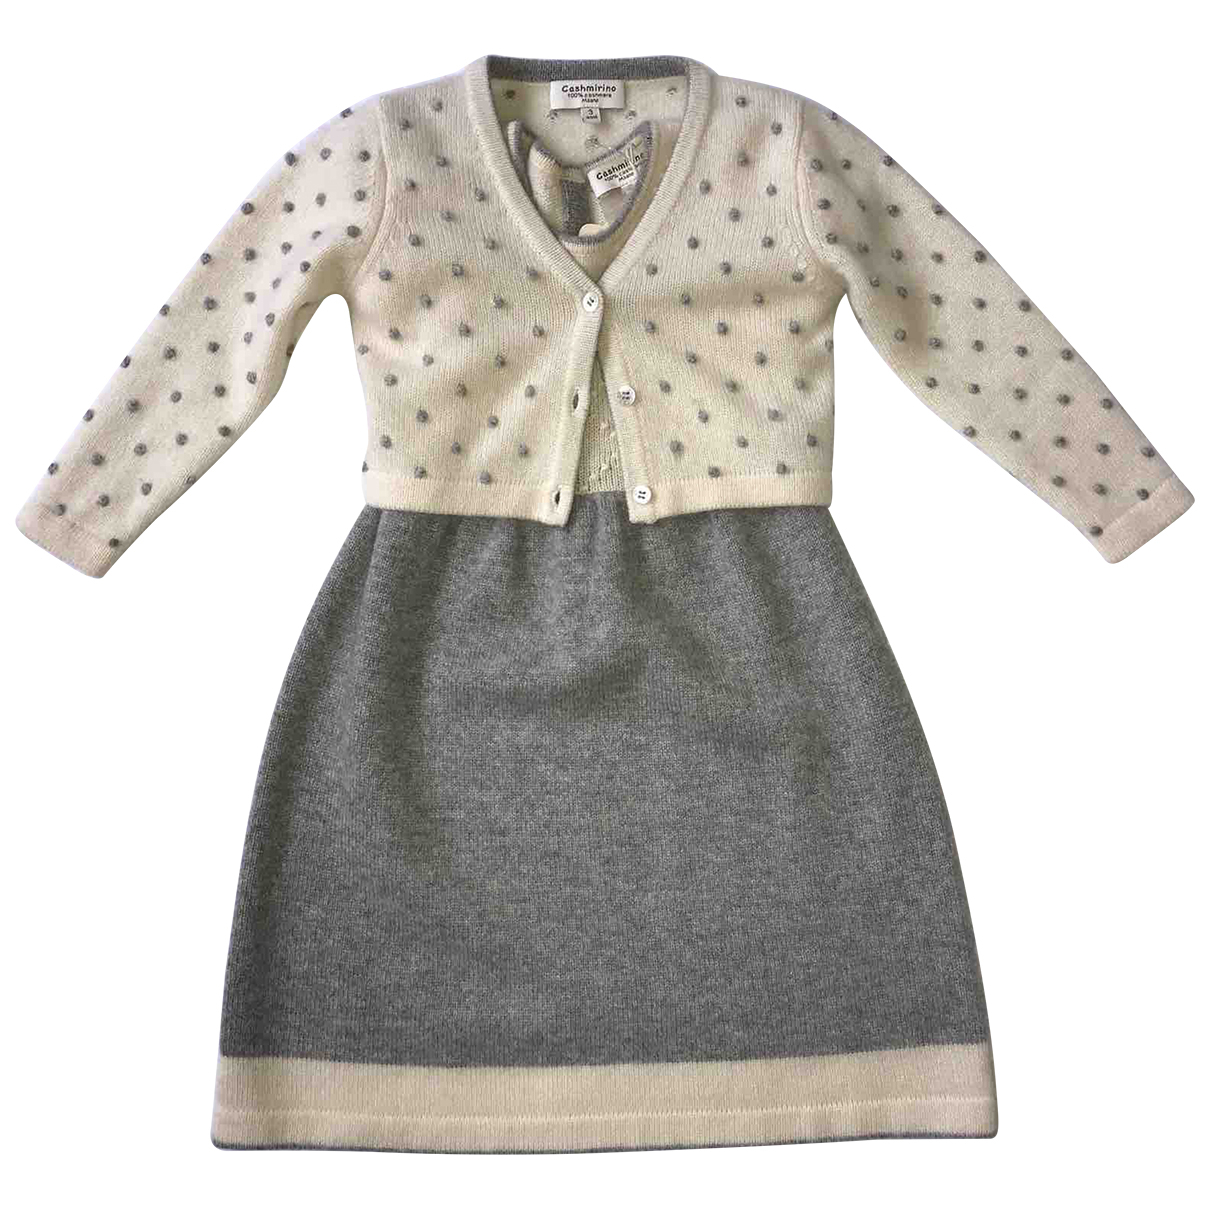 Autre Marque N Beige Cashmere Outfits for Kids 3 years - up to 98cm FR